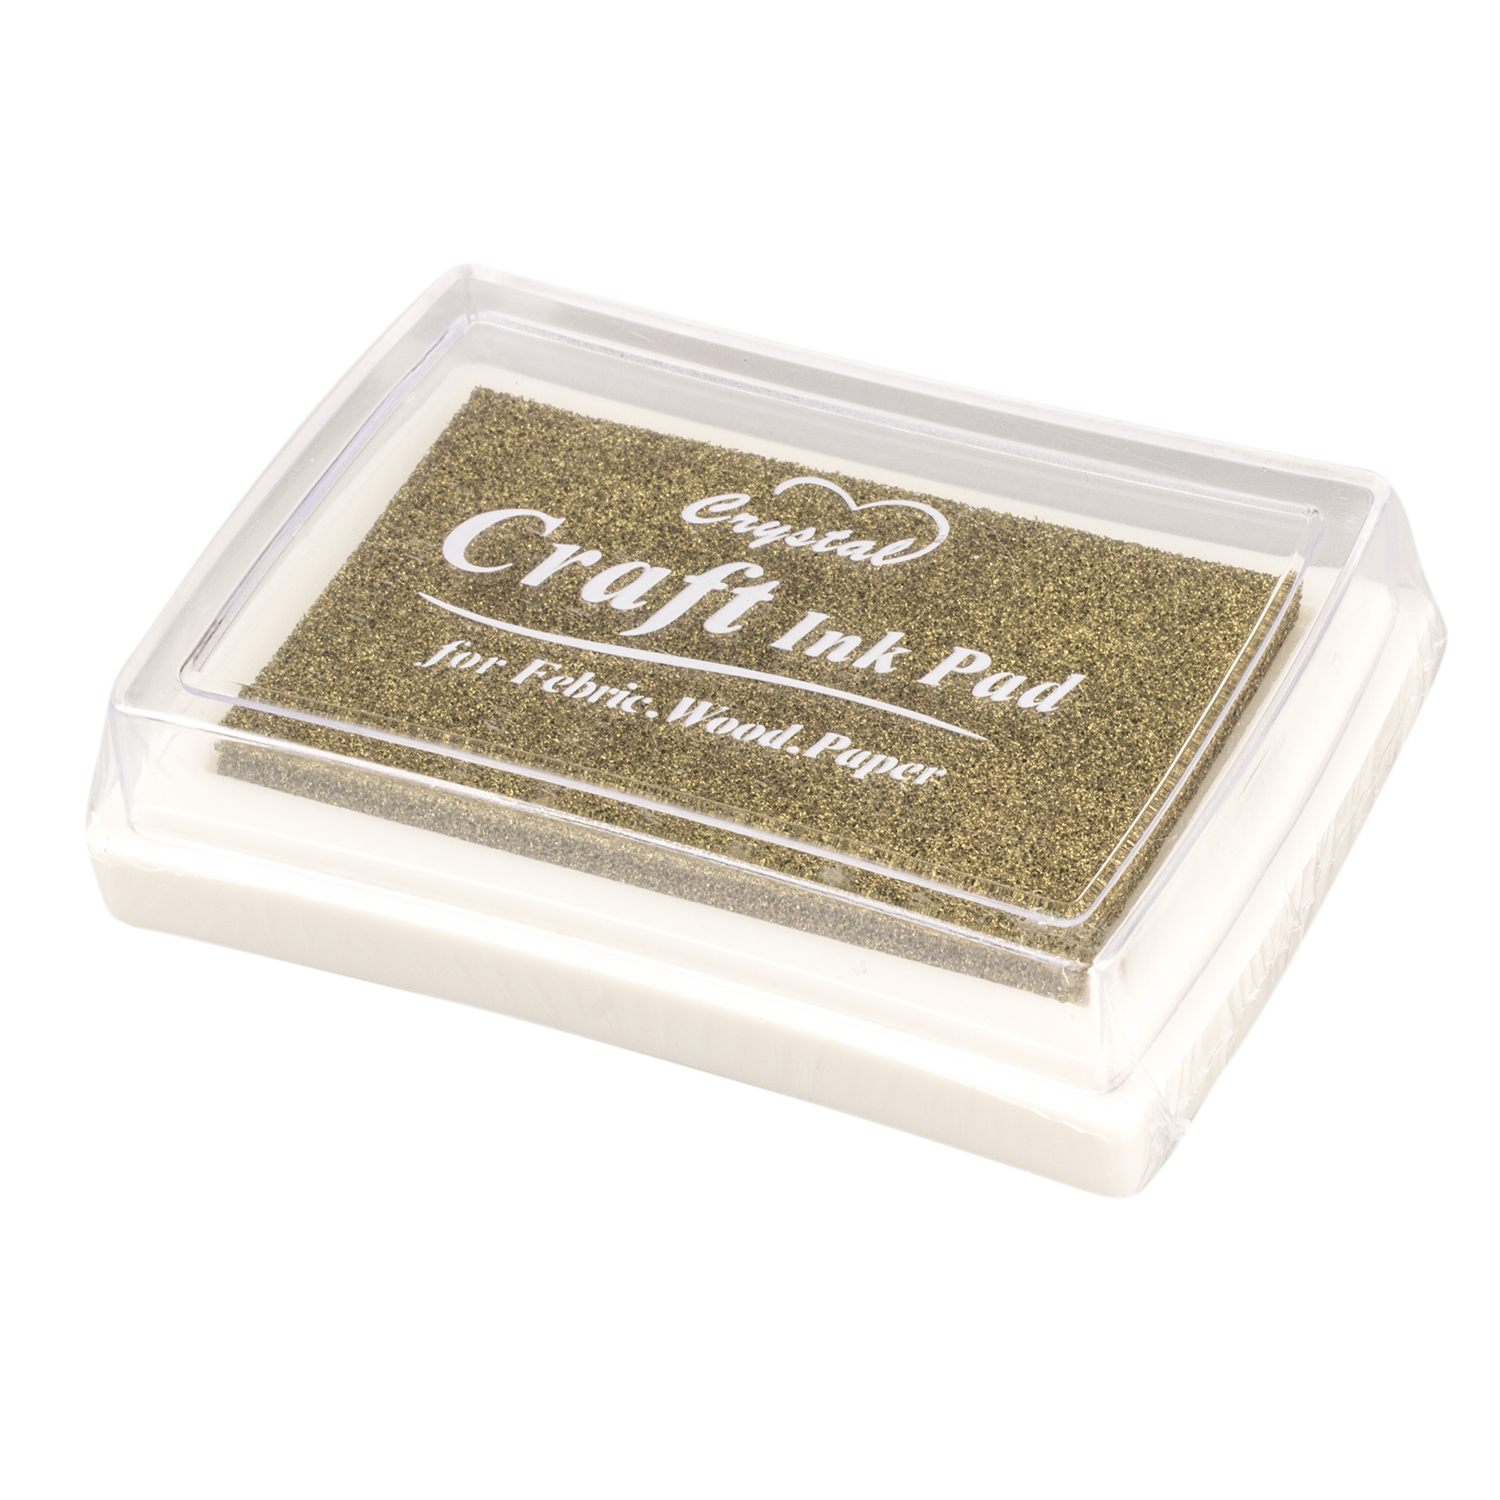 SOSW-Rubber Stamp Ink Pad Stamp Inkpad Ink Pad - Gold